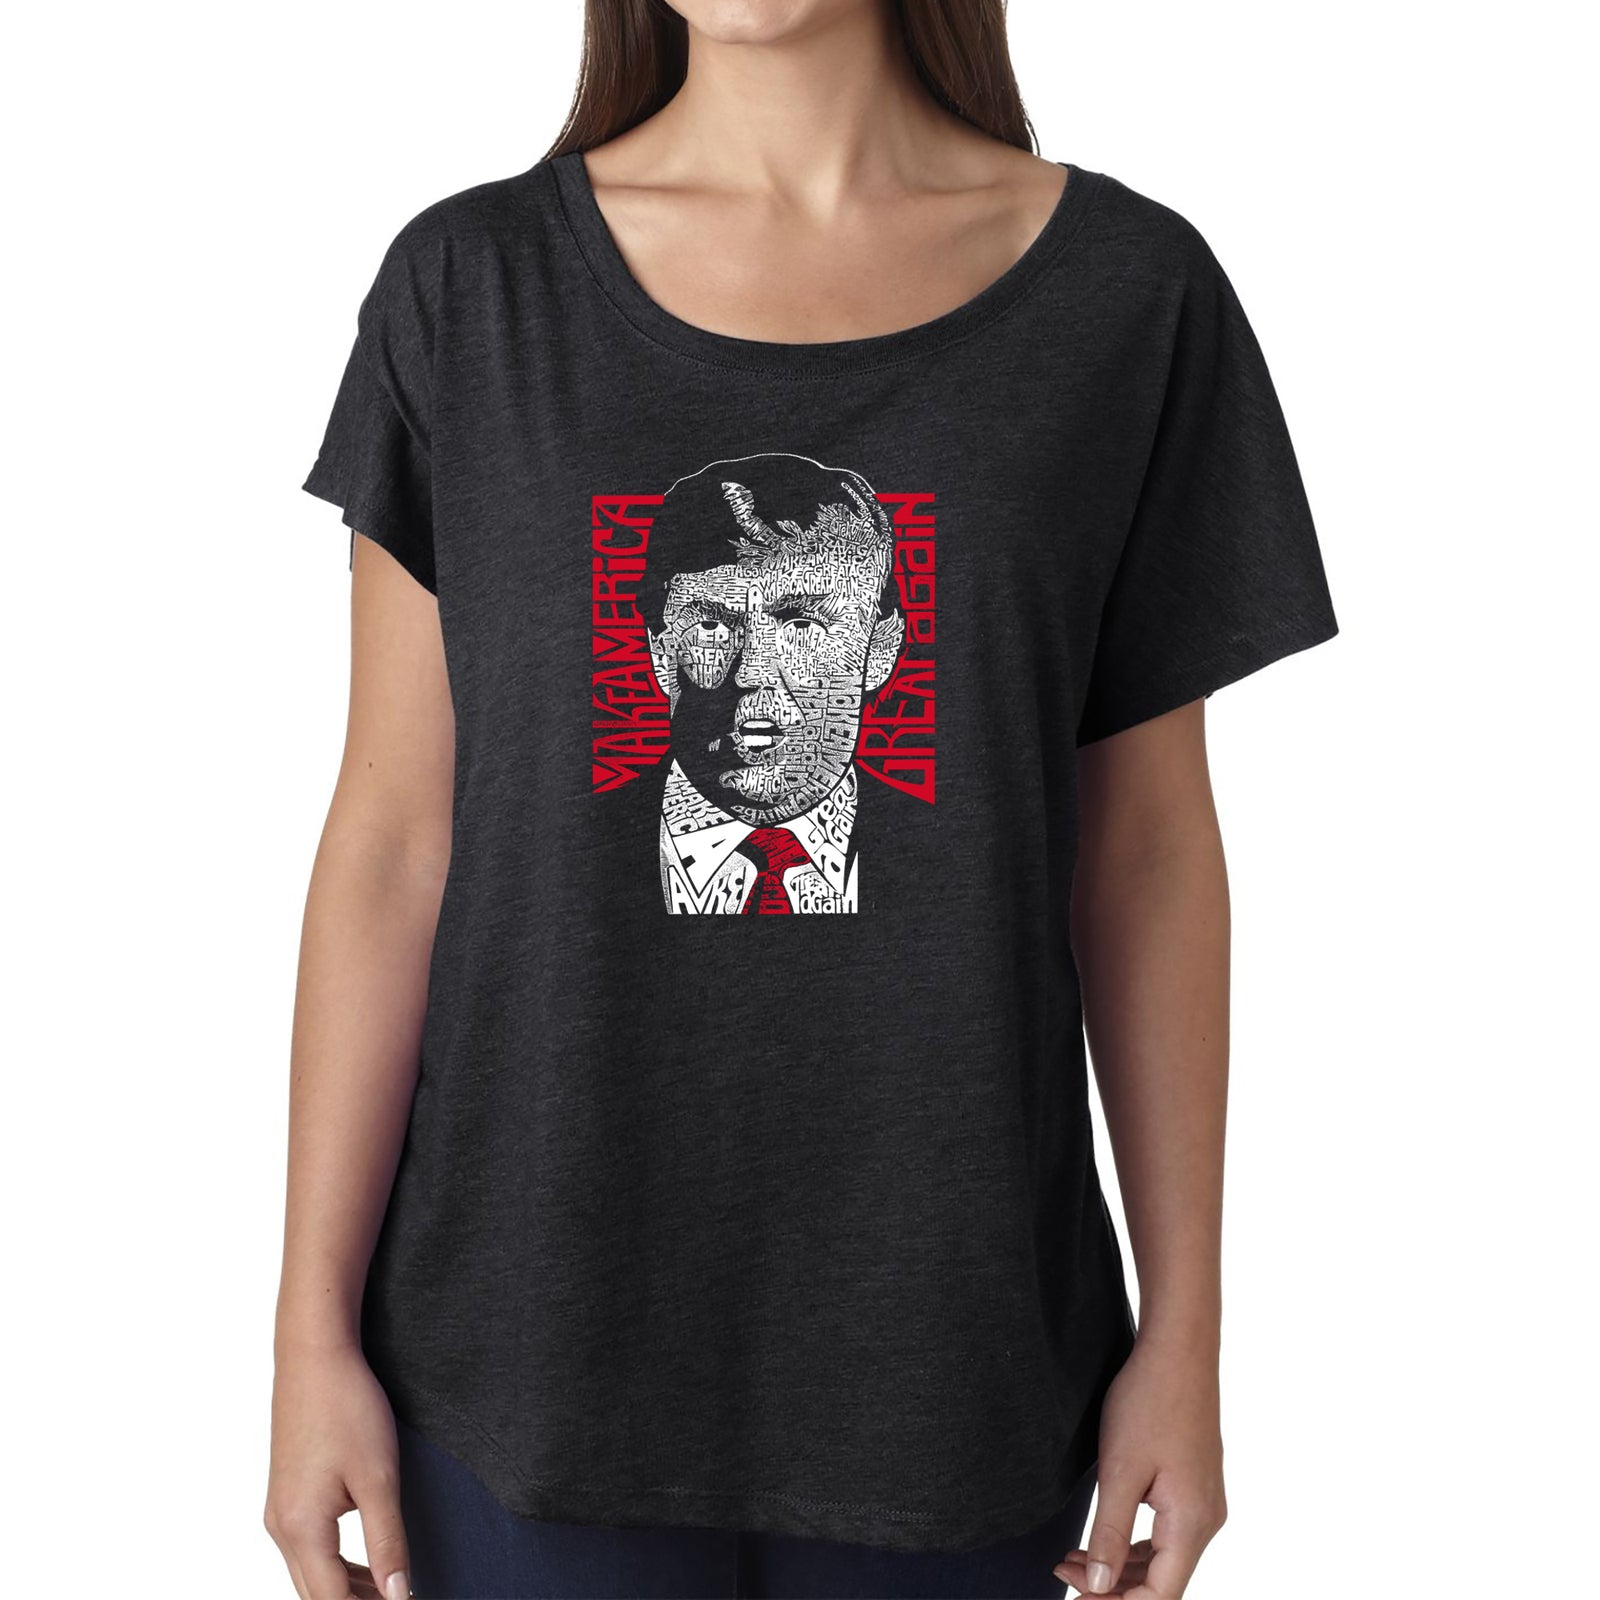 Women's Loose Fit Dolman Cut Word Art Shirt - TRUMP  - Make America Great Again